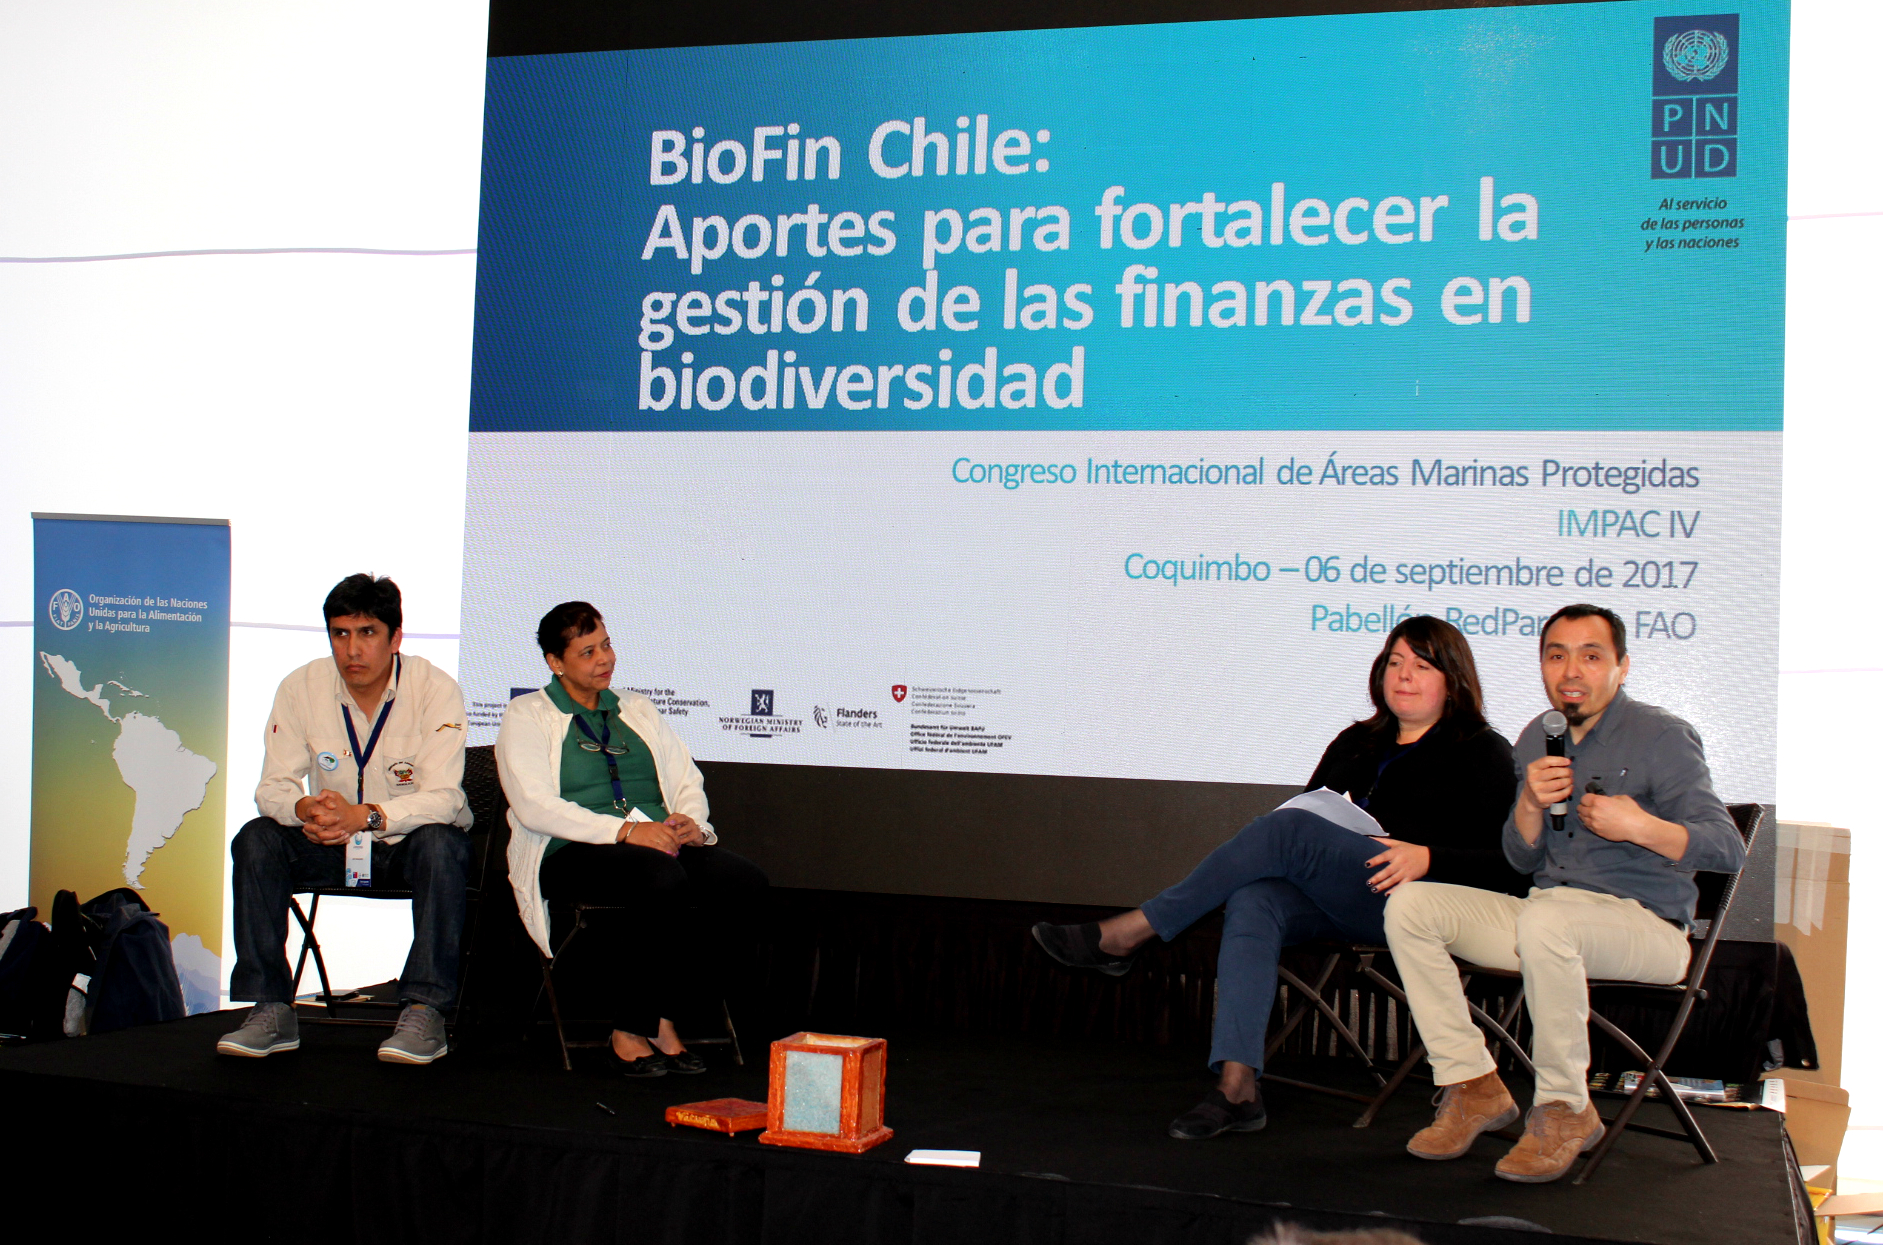 BIOFIN Chile and Cuba present financing strategies during the International Marine Protected Areas Congress IMPAC 4